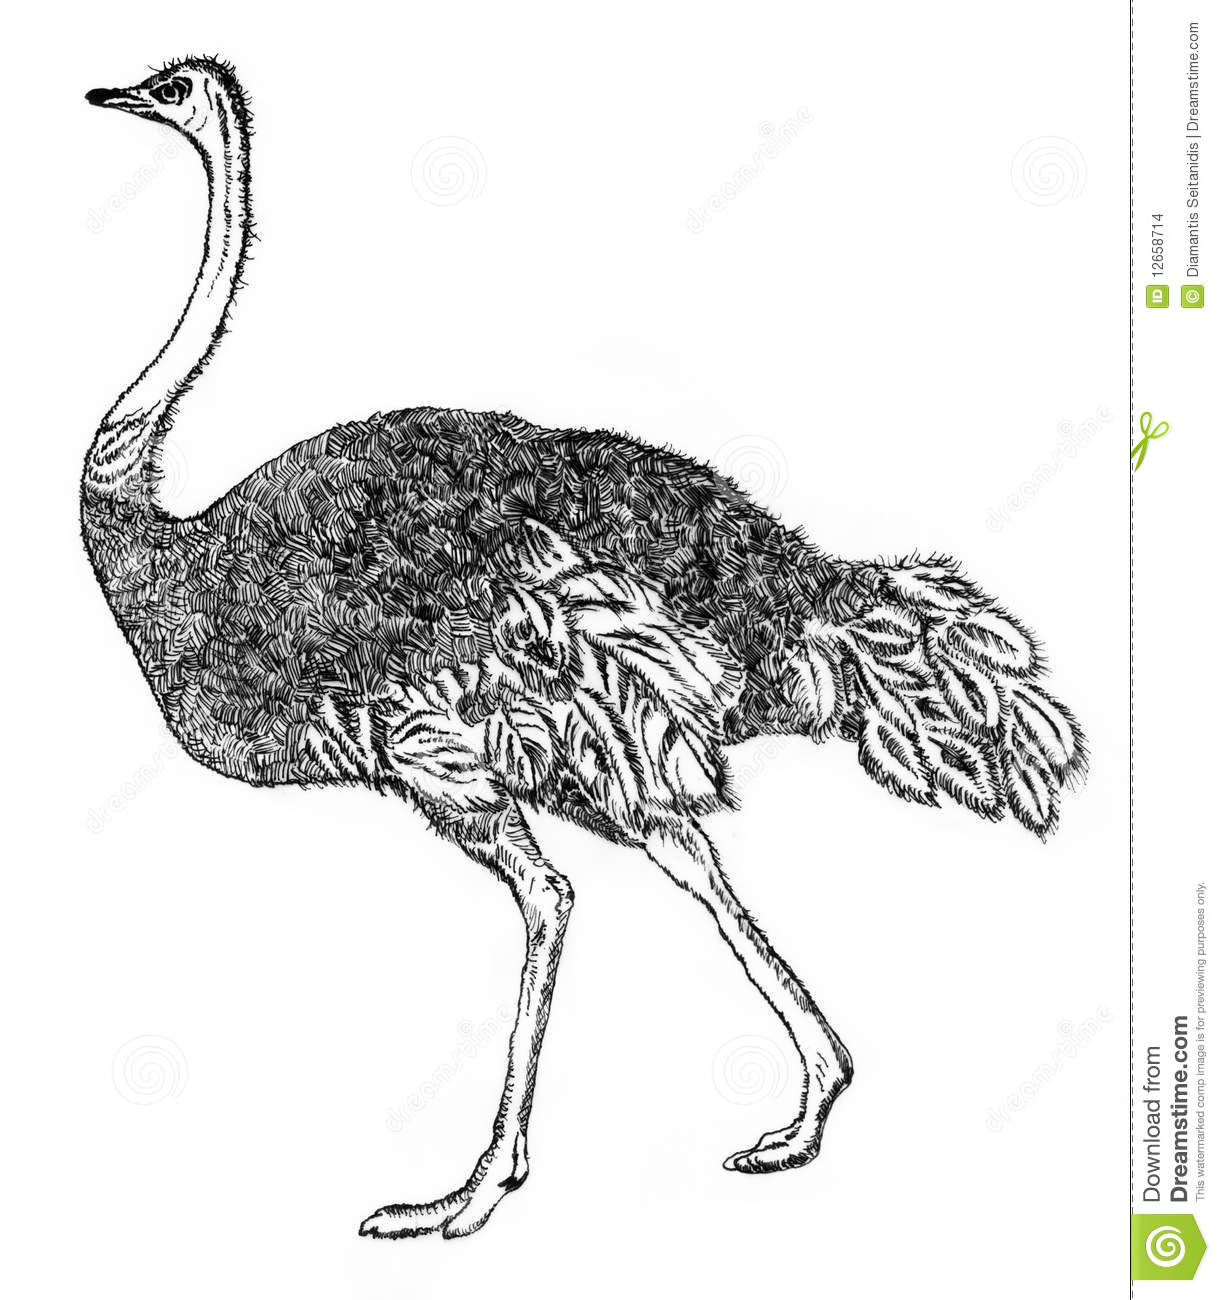 How to draw a realistic ostrich  Step by step Drawing